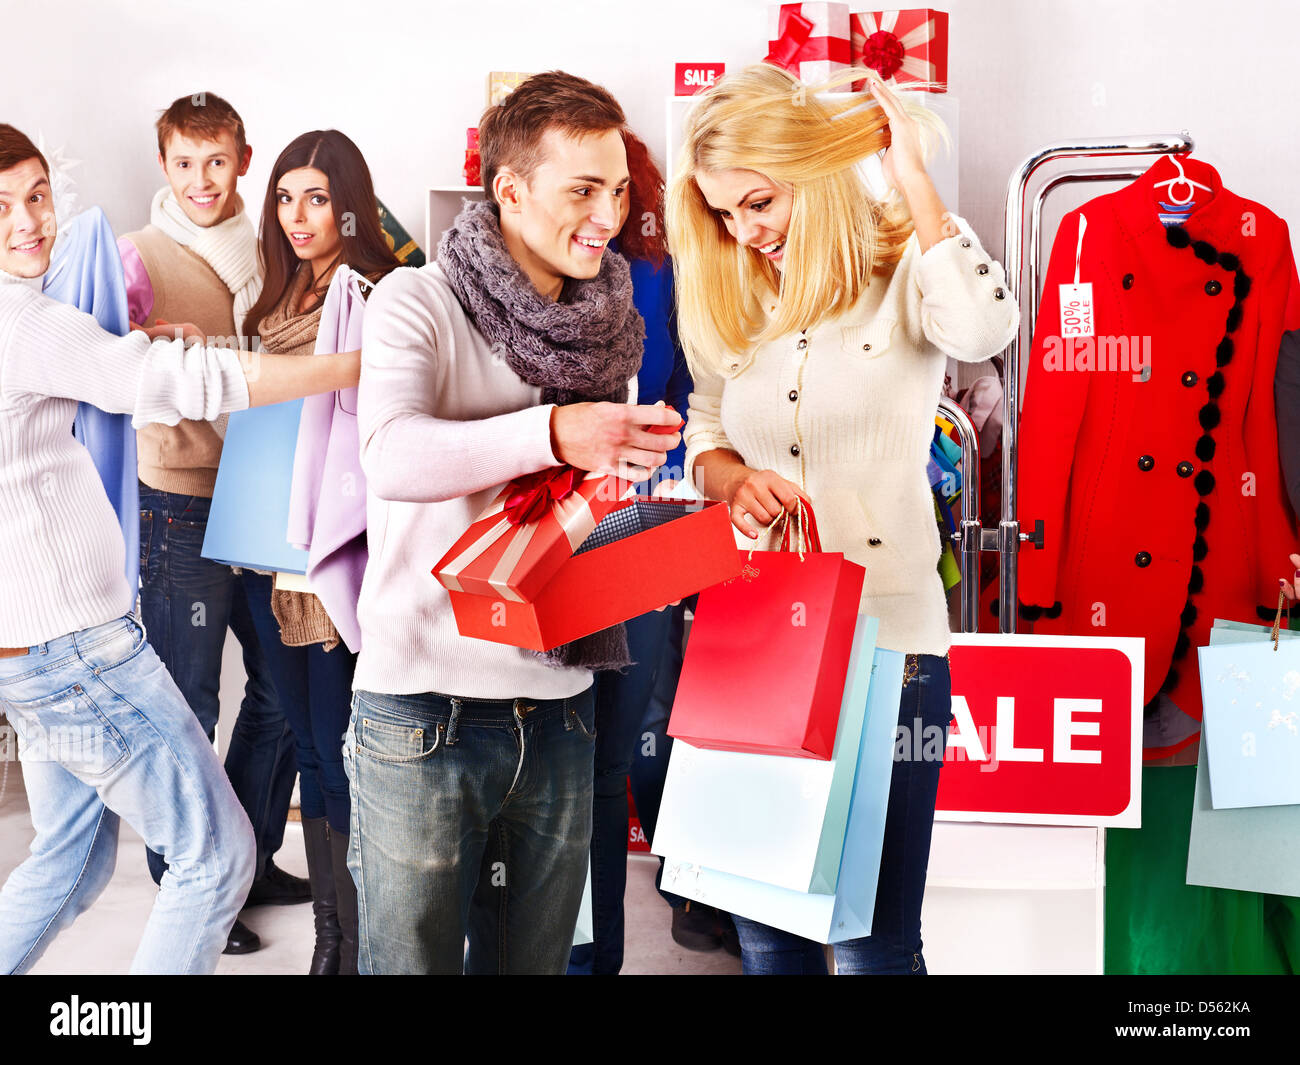 US Clothing and Accessories Store Sales historical data, charts, stats and more. US Clothing and Accessories Store Sales is at a current level of B, down from B last month and up from B one year ago. This is a change of % from last month and % from one year ago.